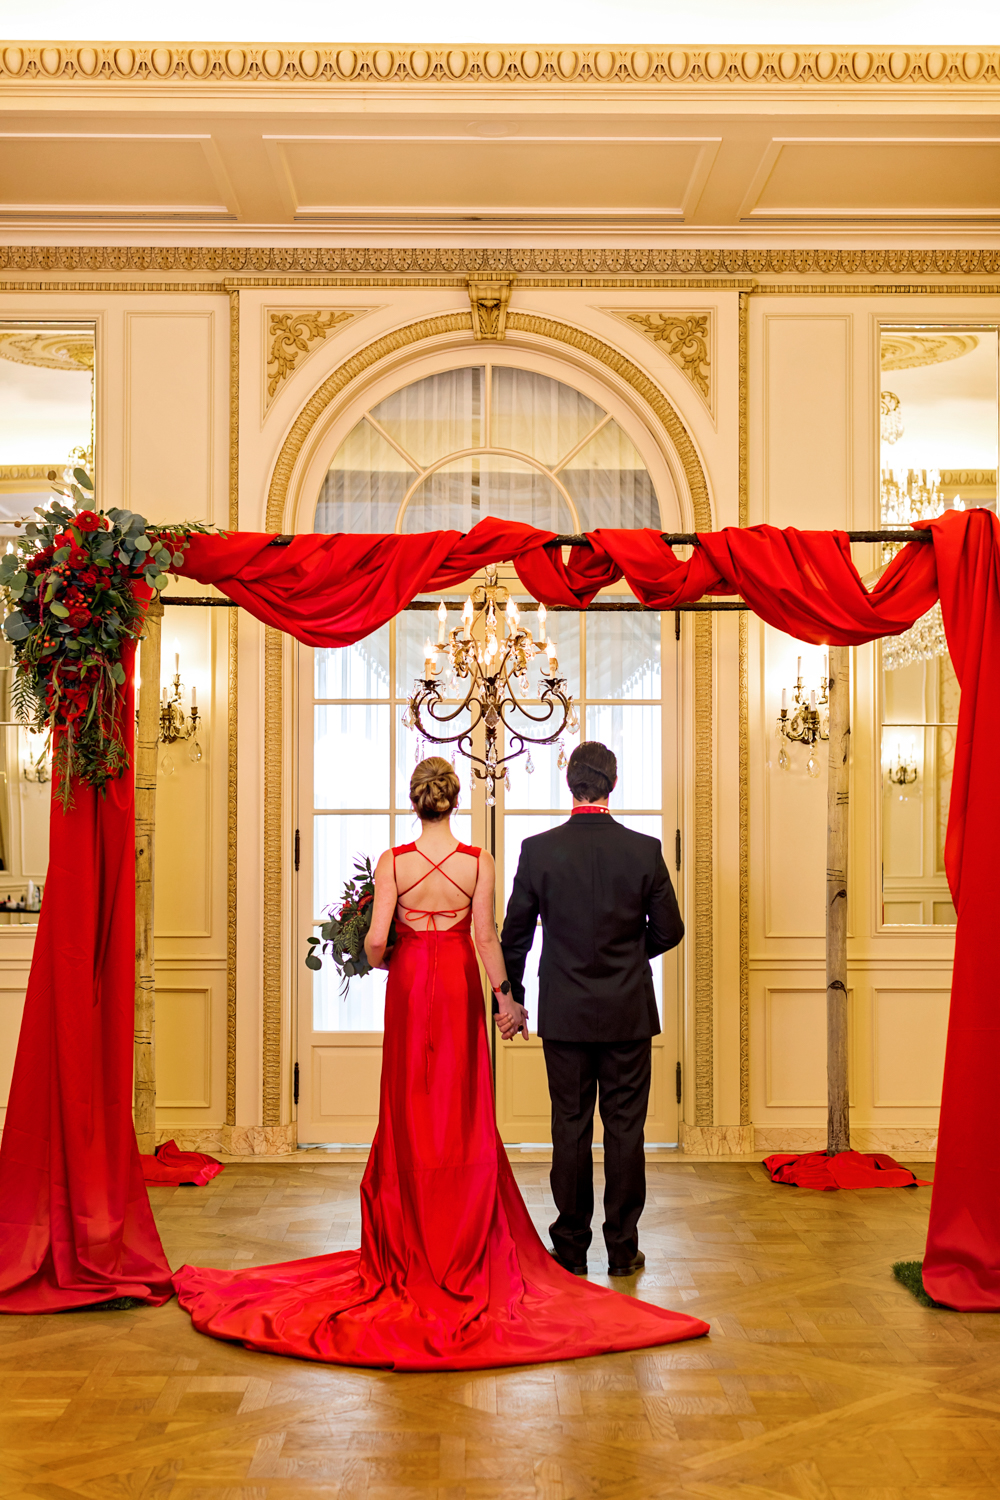 San Diego Red Chinese Wedding Styled Shoot The Westgate Hotel Venue-5772.jpg